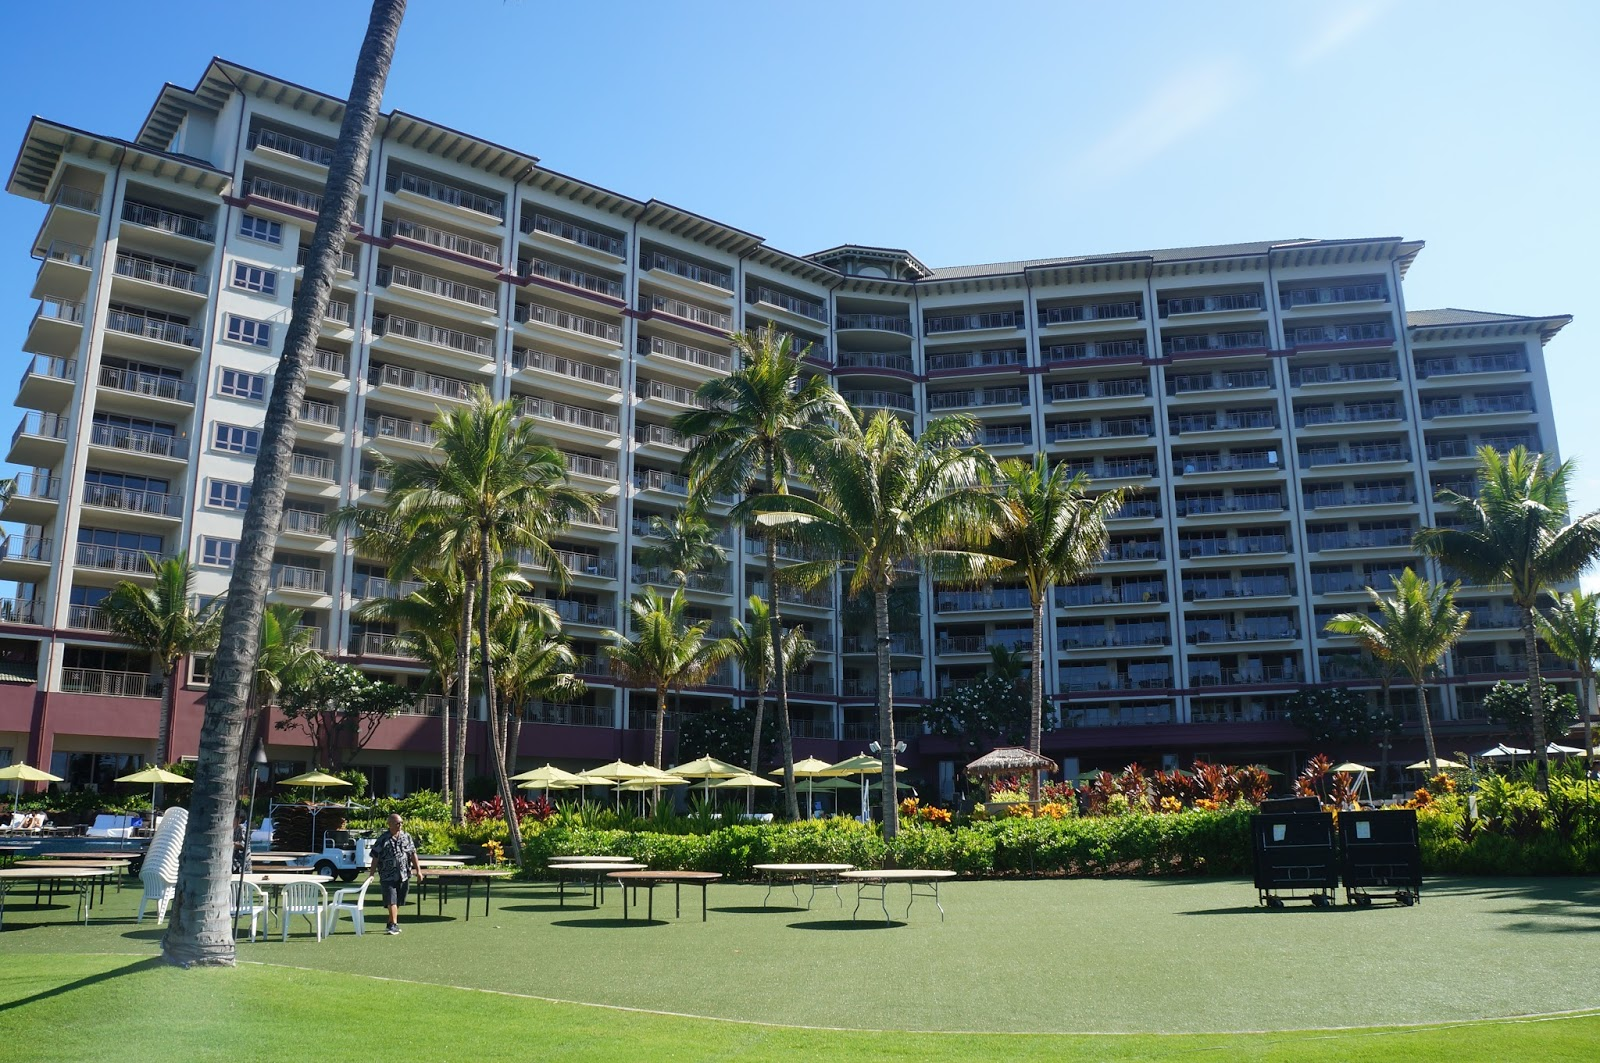 HYATT MAUI ka'anapali beach - Lahaina, HITwelve story reinforced concrete building with concrete shear walls, concrete moment frames and post-tensioned slabs, including a full basement, for interval-ownership condominiums.Contractor: PCLArchitect: GROUP 70 INTERNATIONAL